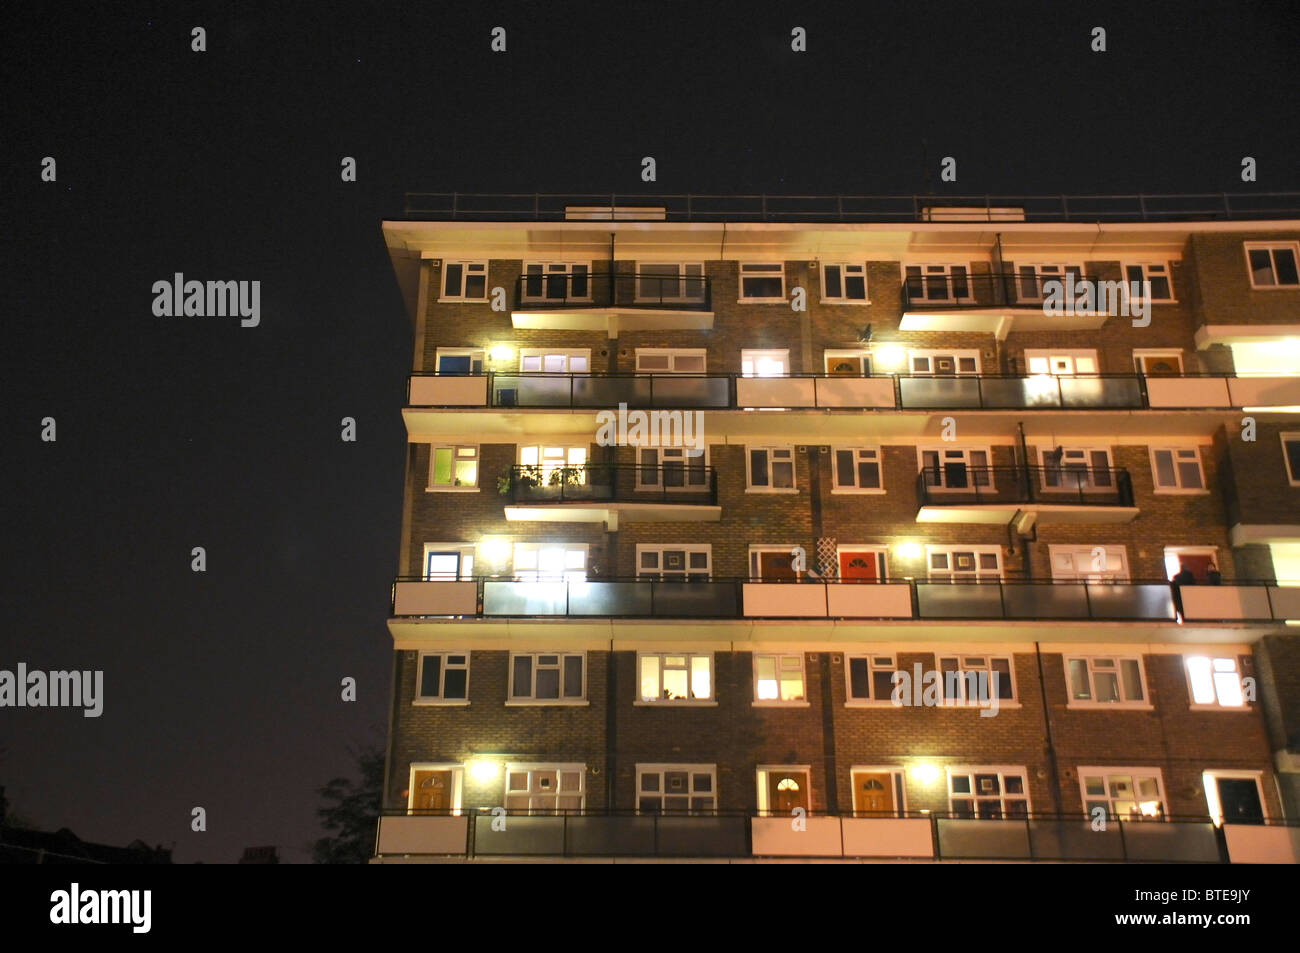 Apartment building at night - Stock Image